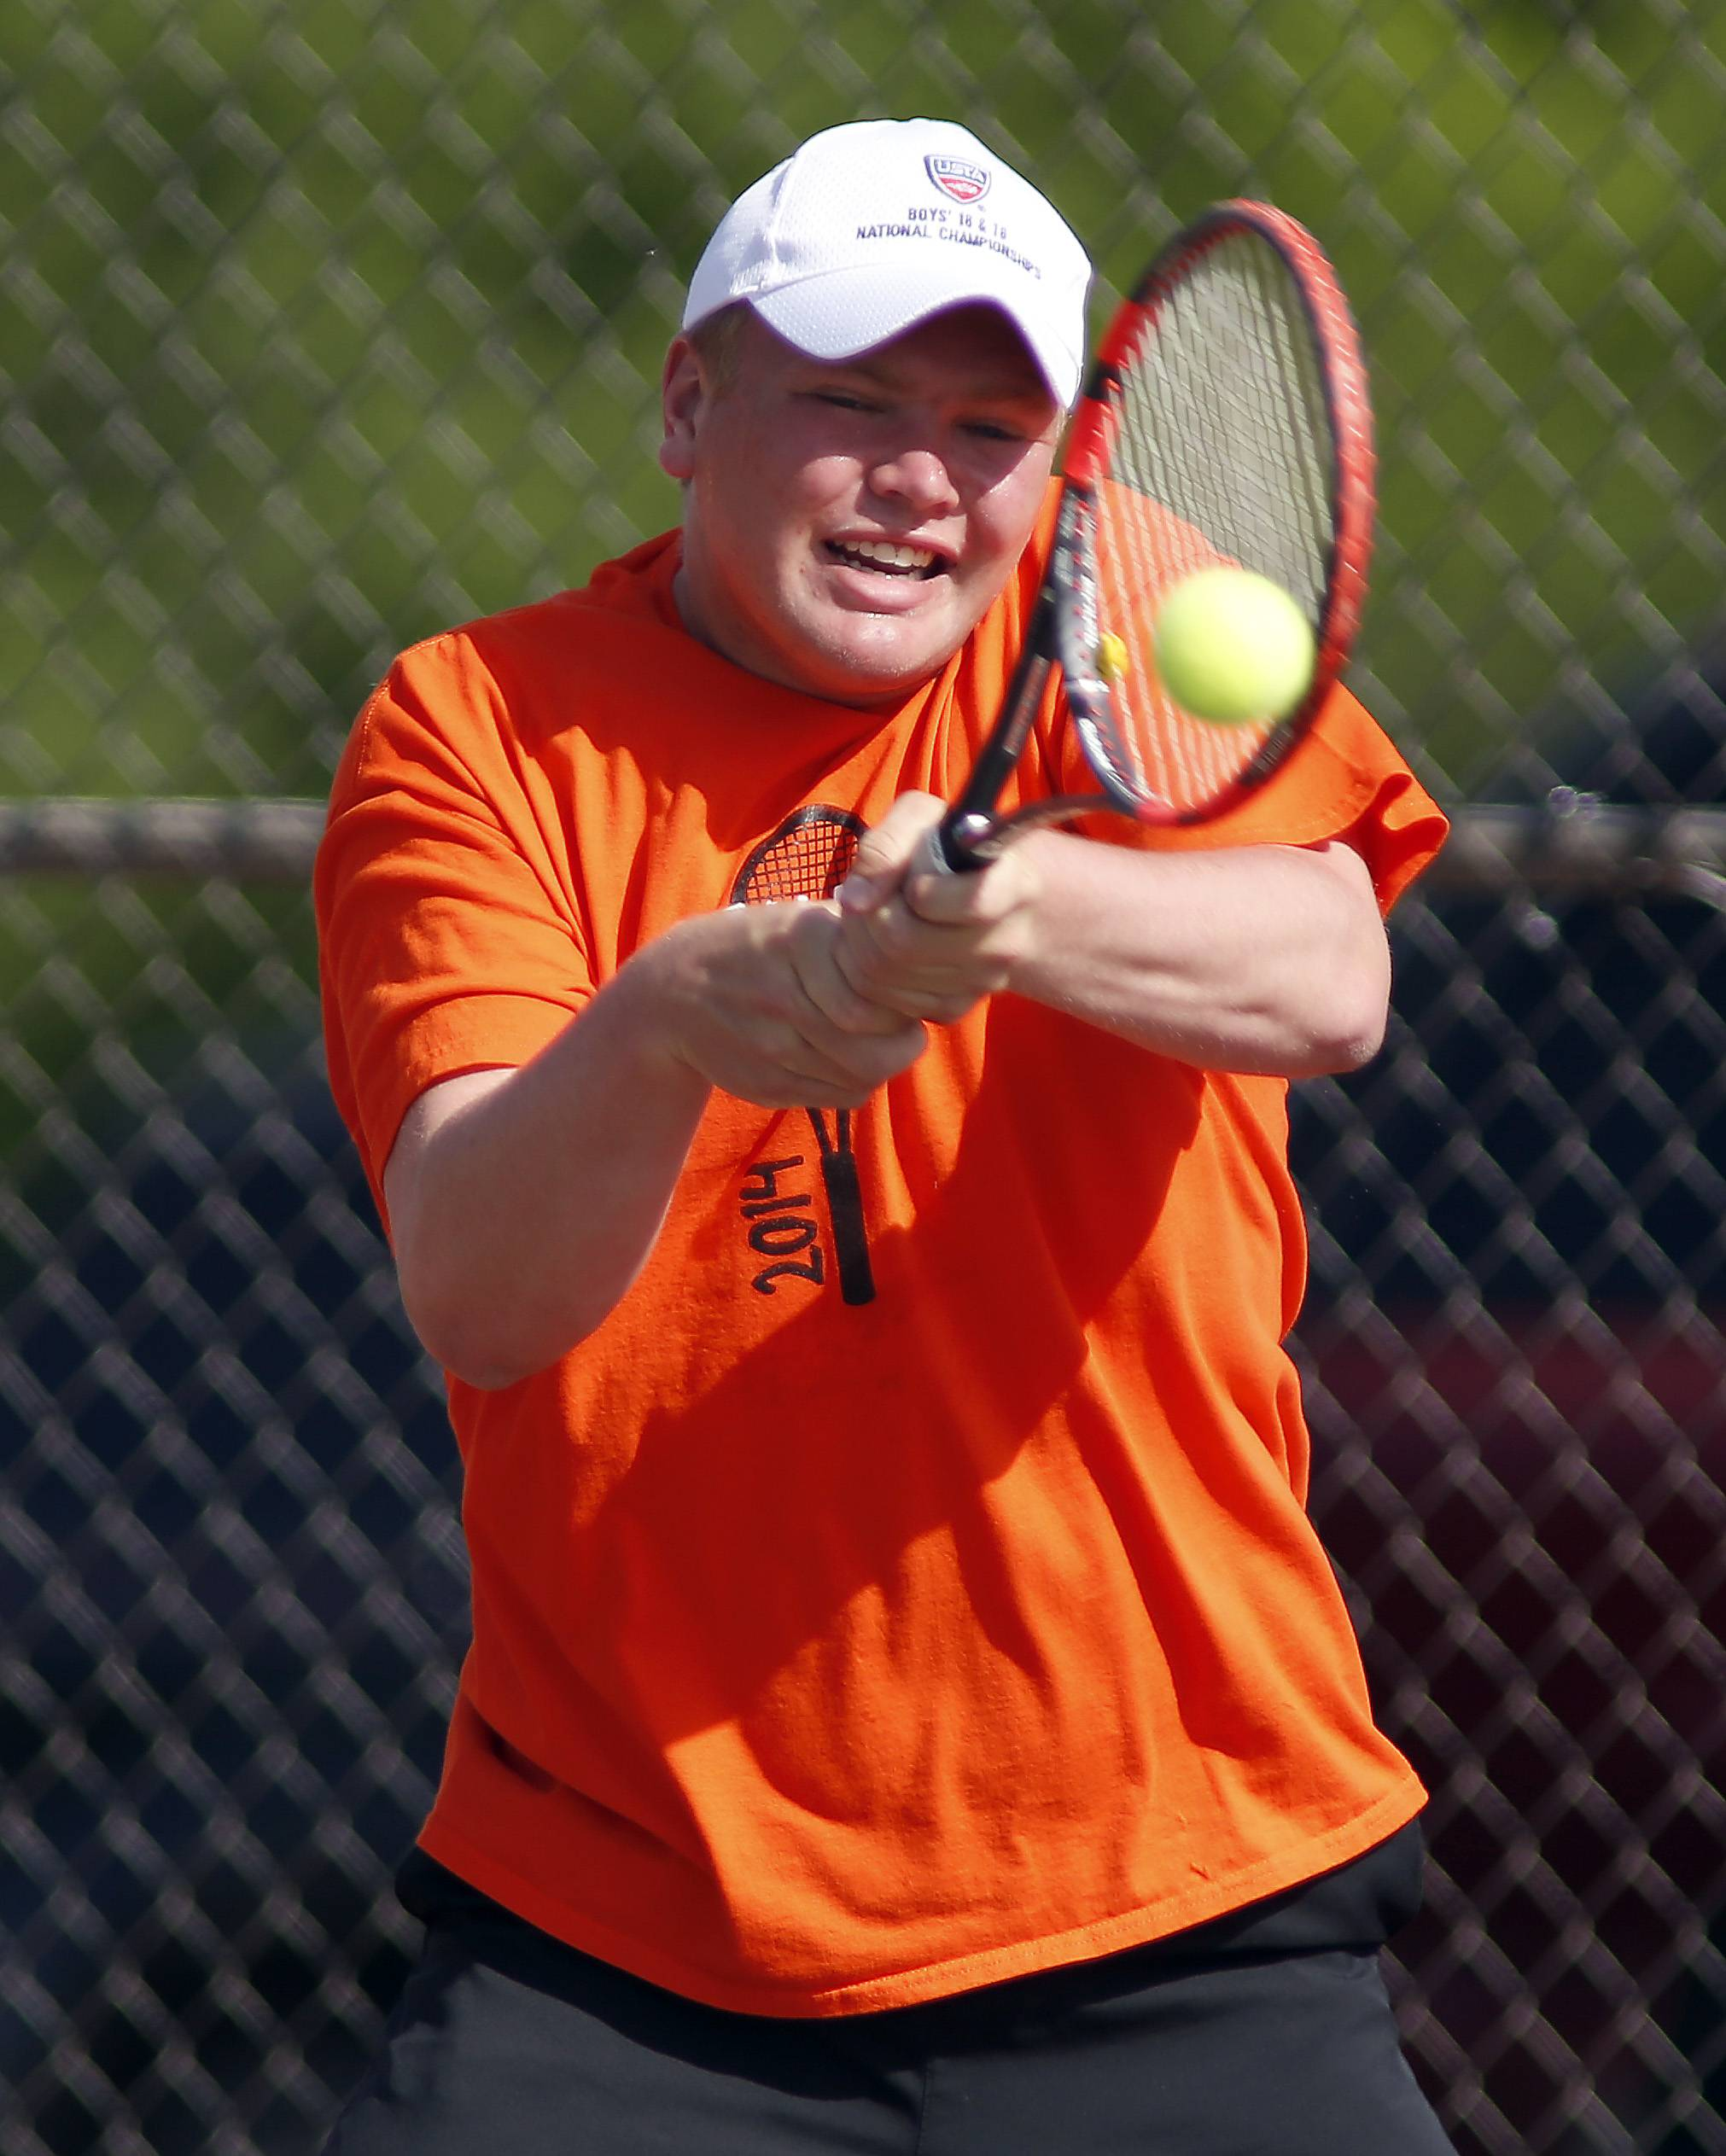 St. Charles East's Jasper Koenen returns a shot from Wheaton Academy's Chris Jones during the St. Charles East boys tennis sectional Saturday in St. Charles.